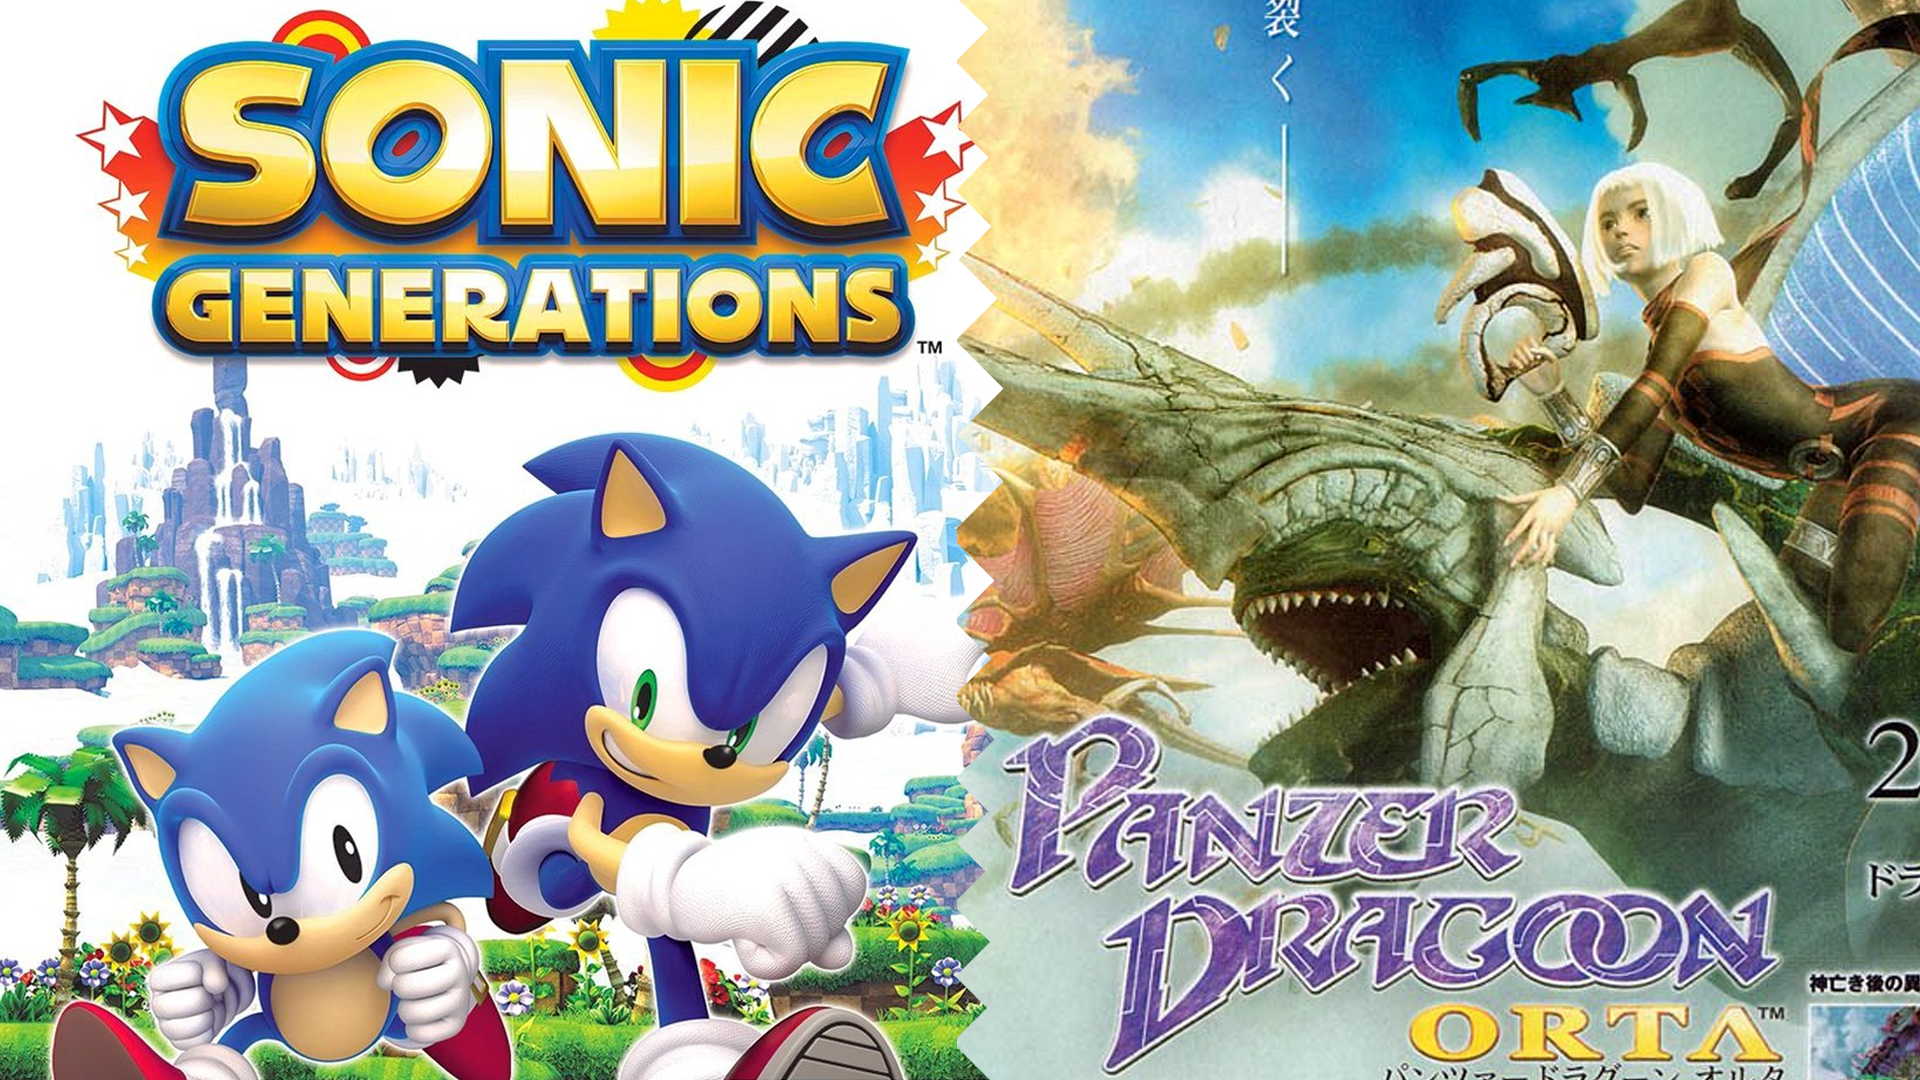 Sonic Generations and Panzer Dragoon Orta to join Xbox One